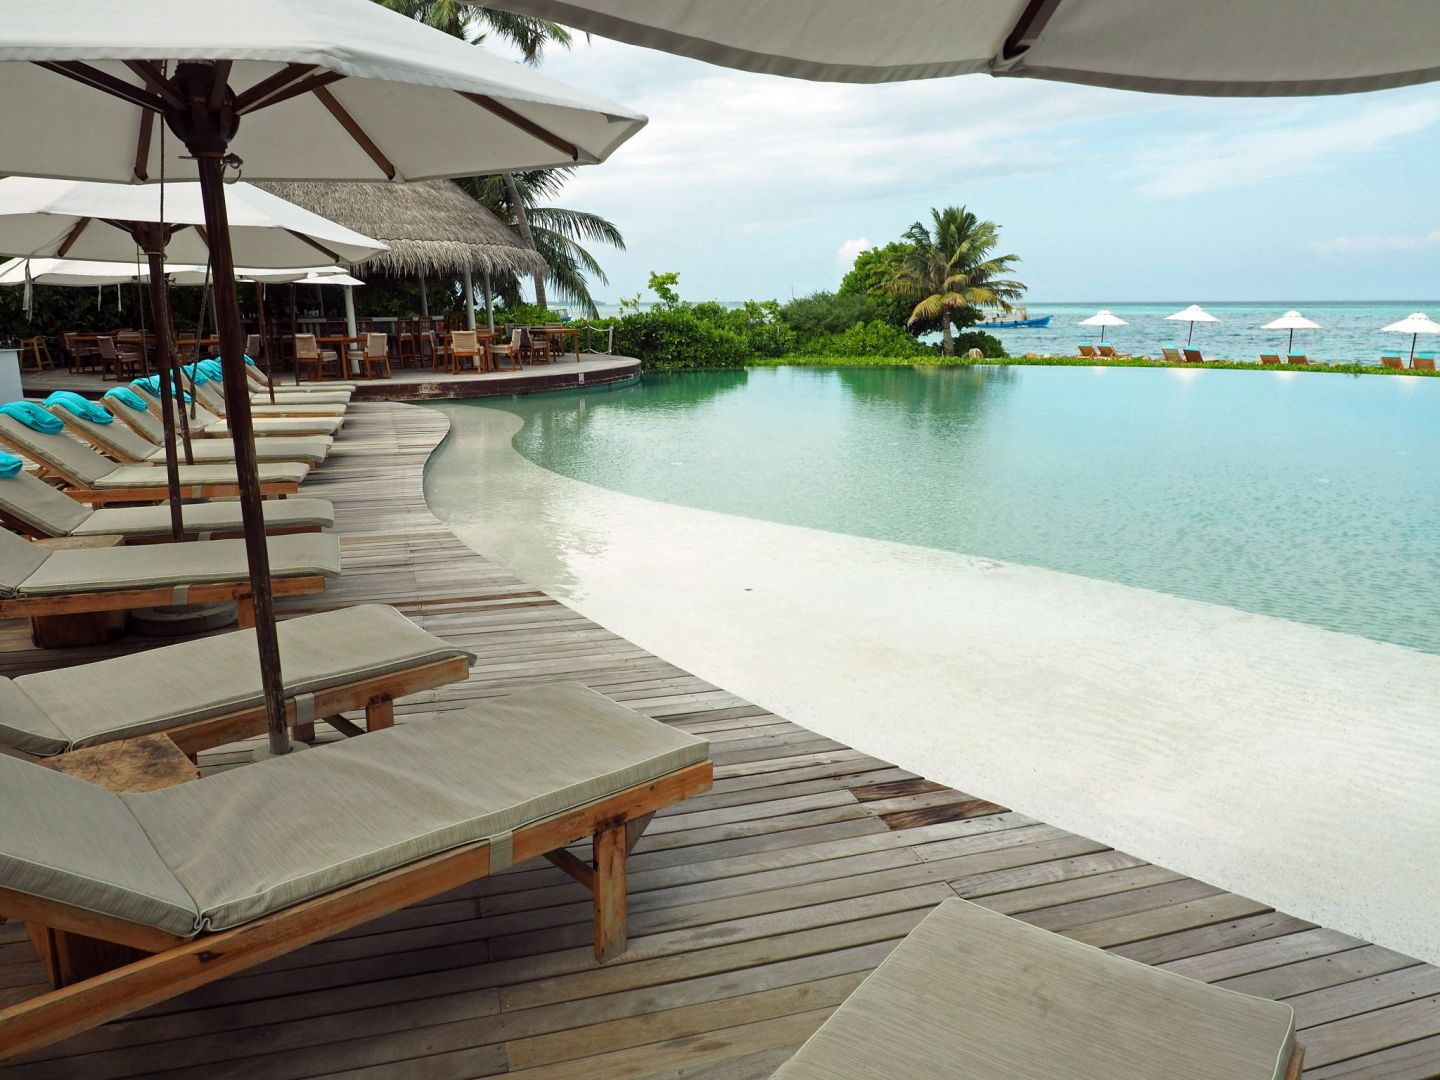 Veli Bar and Infinity Pool LUX Maldives